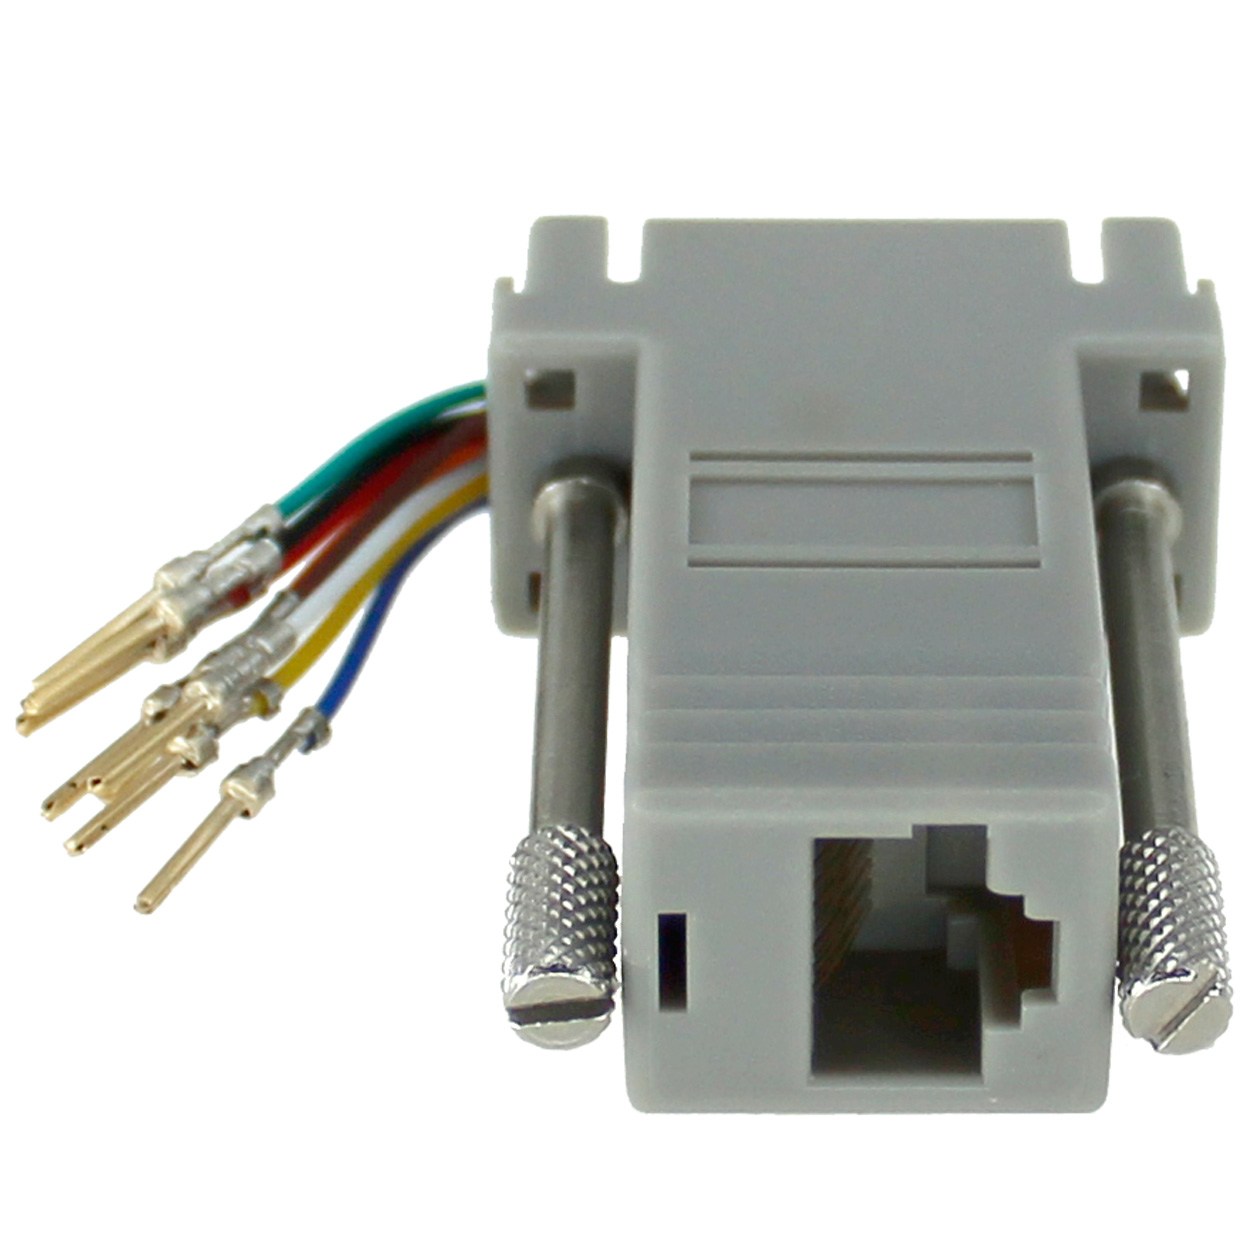 Rj45 To Db9 Male Modular Adapter Grey Pi Manufacturing Connector Wiring